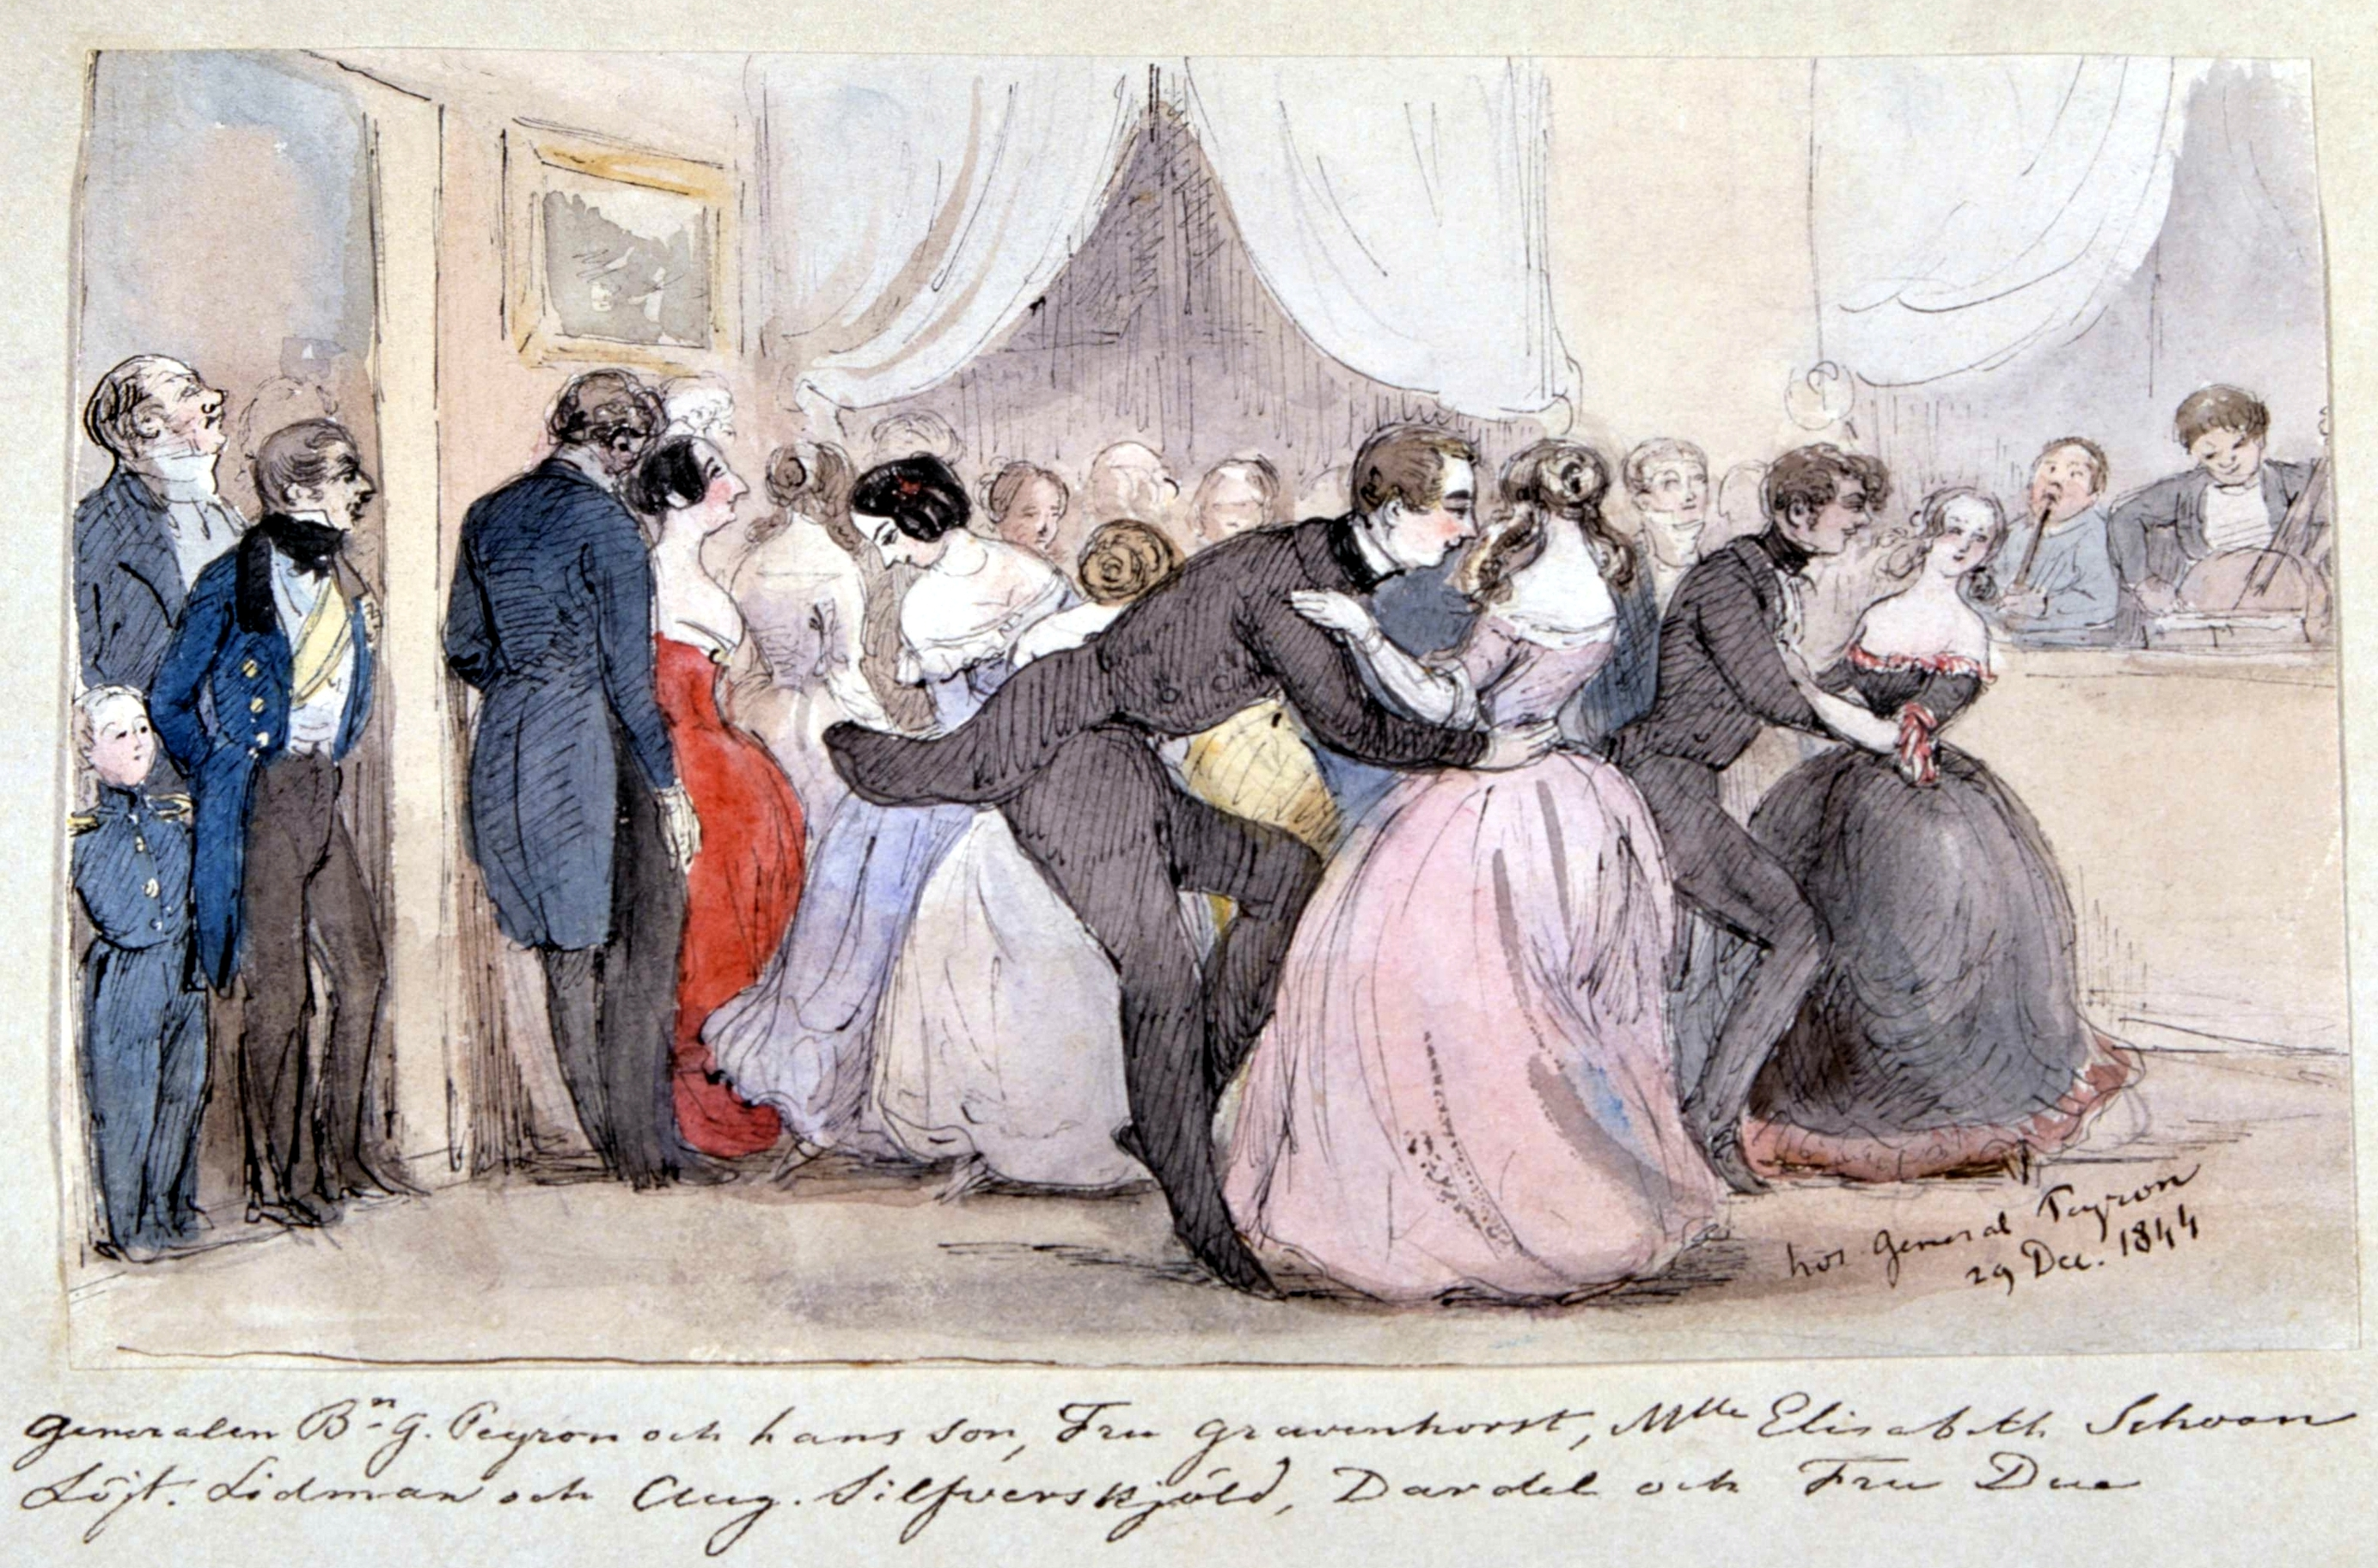 At General Peyron's Ball, 19 Dec 1844. Elisabeth Schwan is the dark haired girl in the lilac dress.